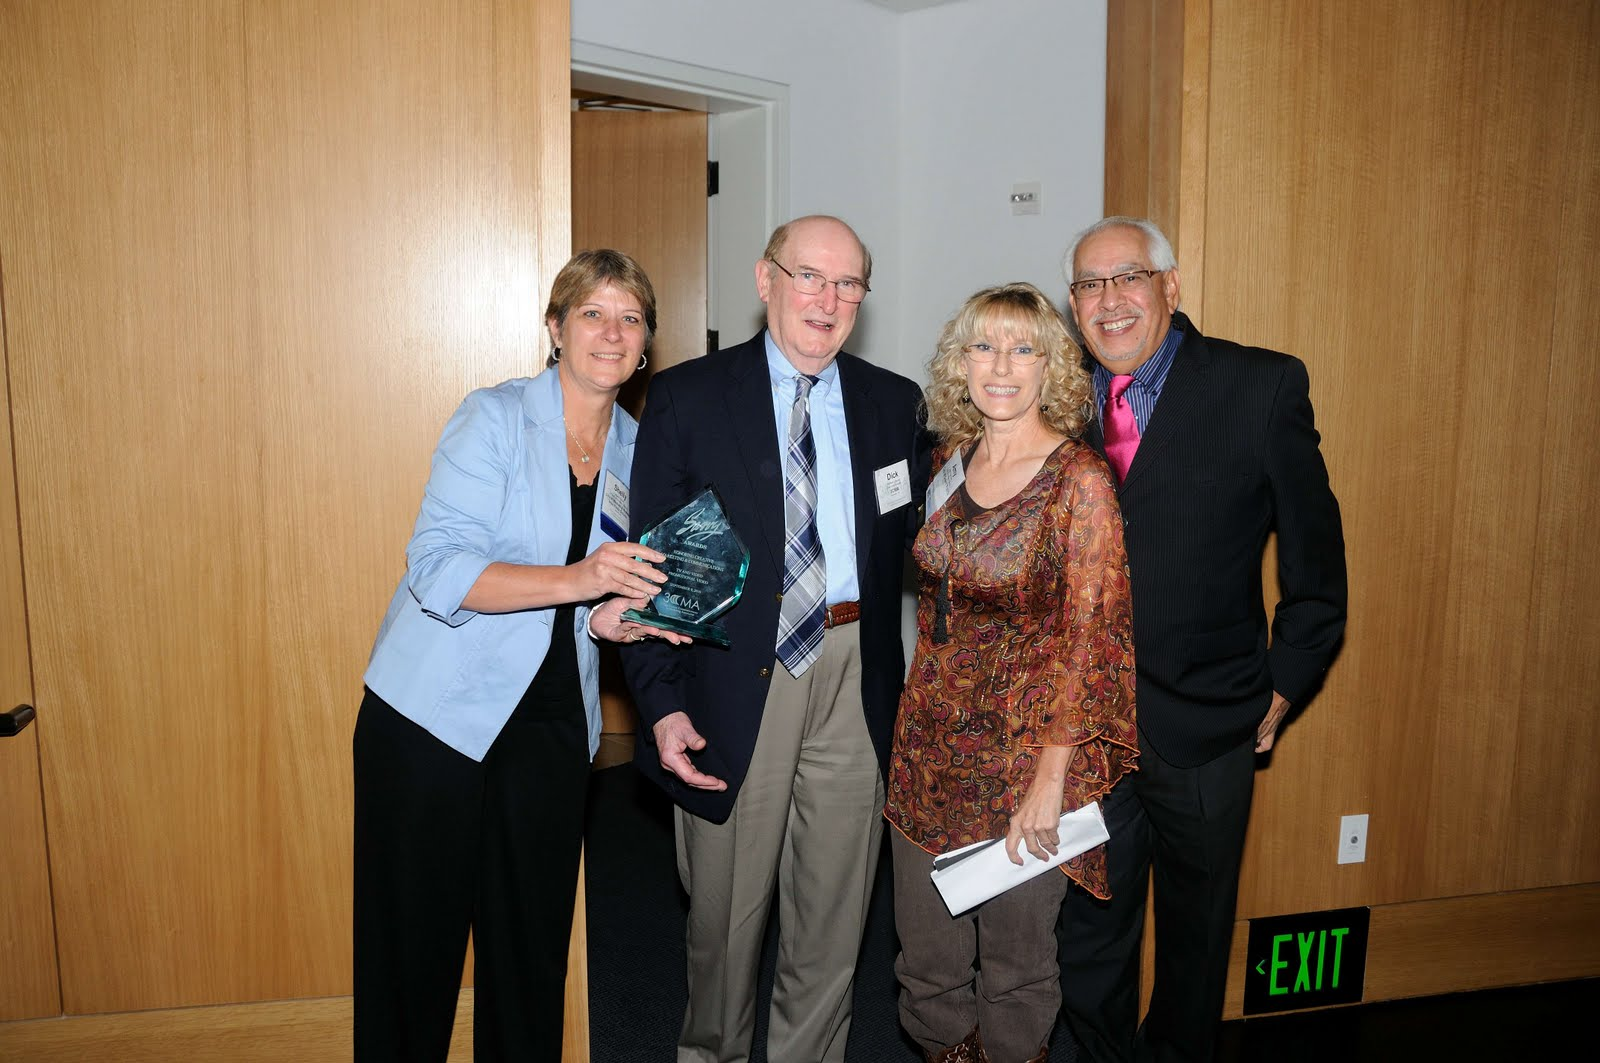 Shelly Schulz (Mankato, MN), Dick Lillquist (3CMA), Amy Sprinkles (Grand Prairie, TX) and Joe Munoz (Maricopa County, AZ)